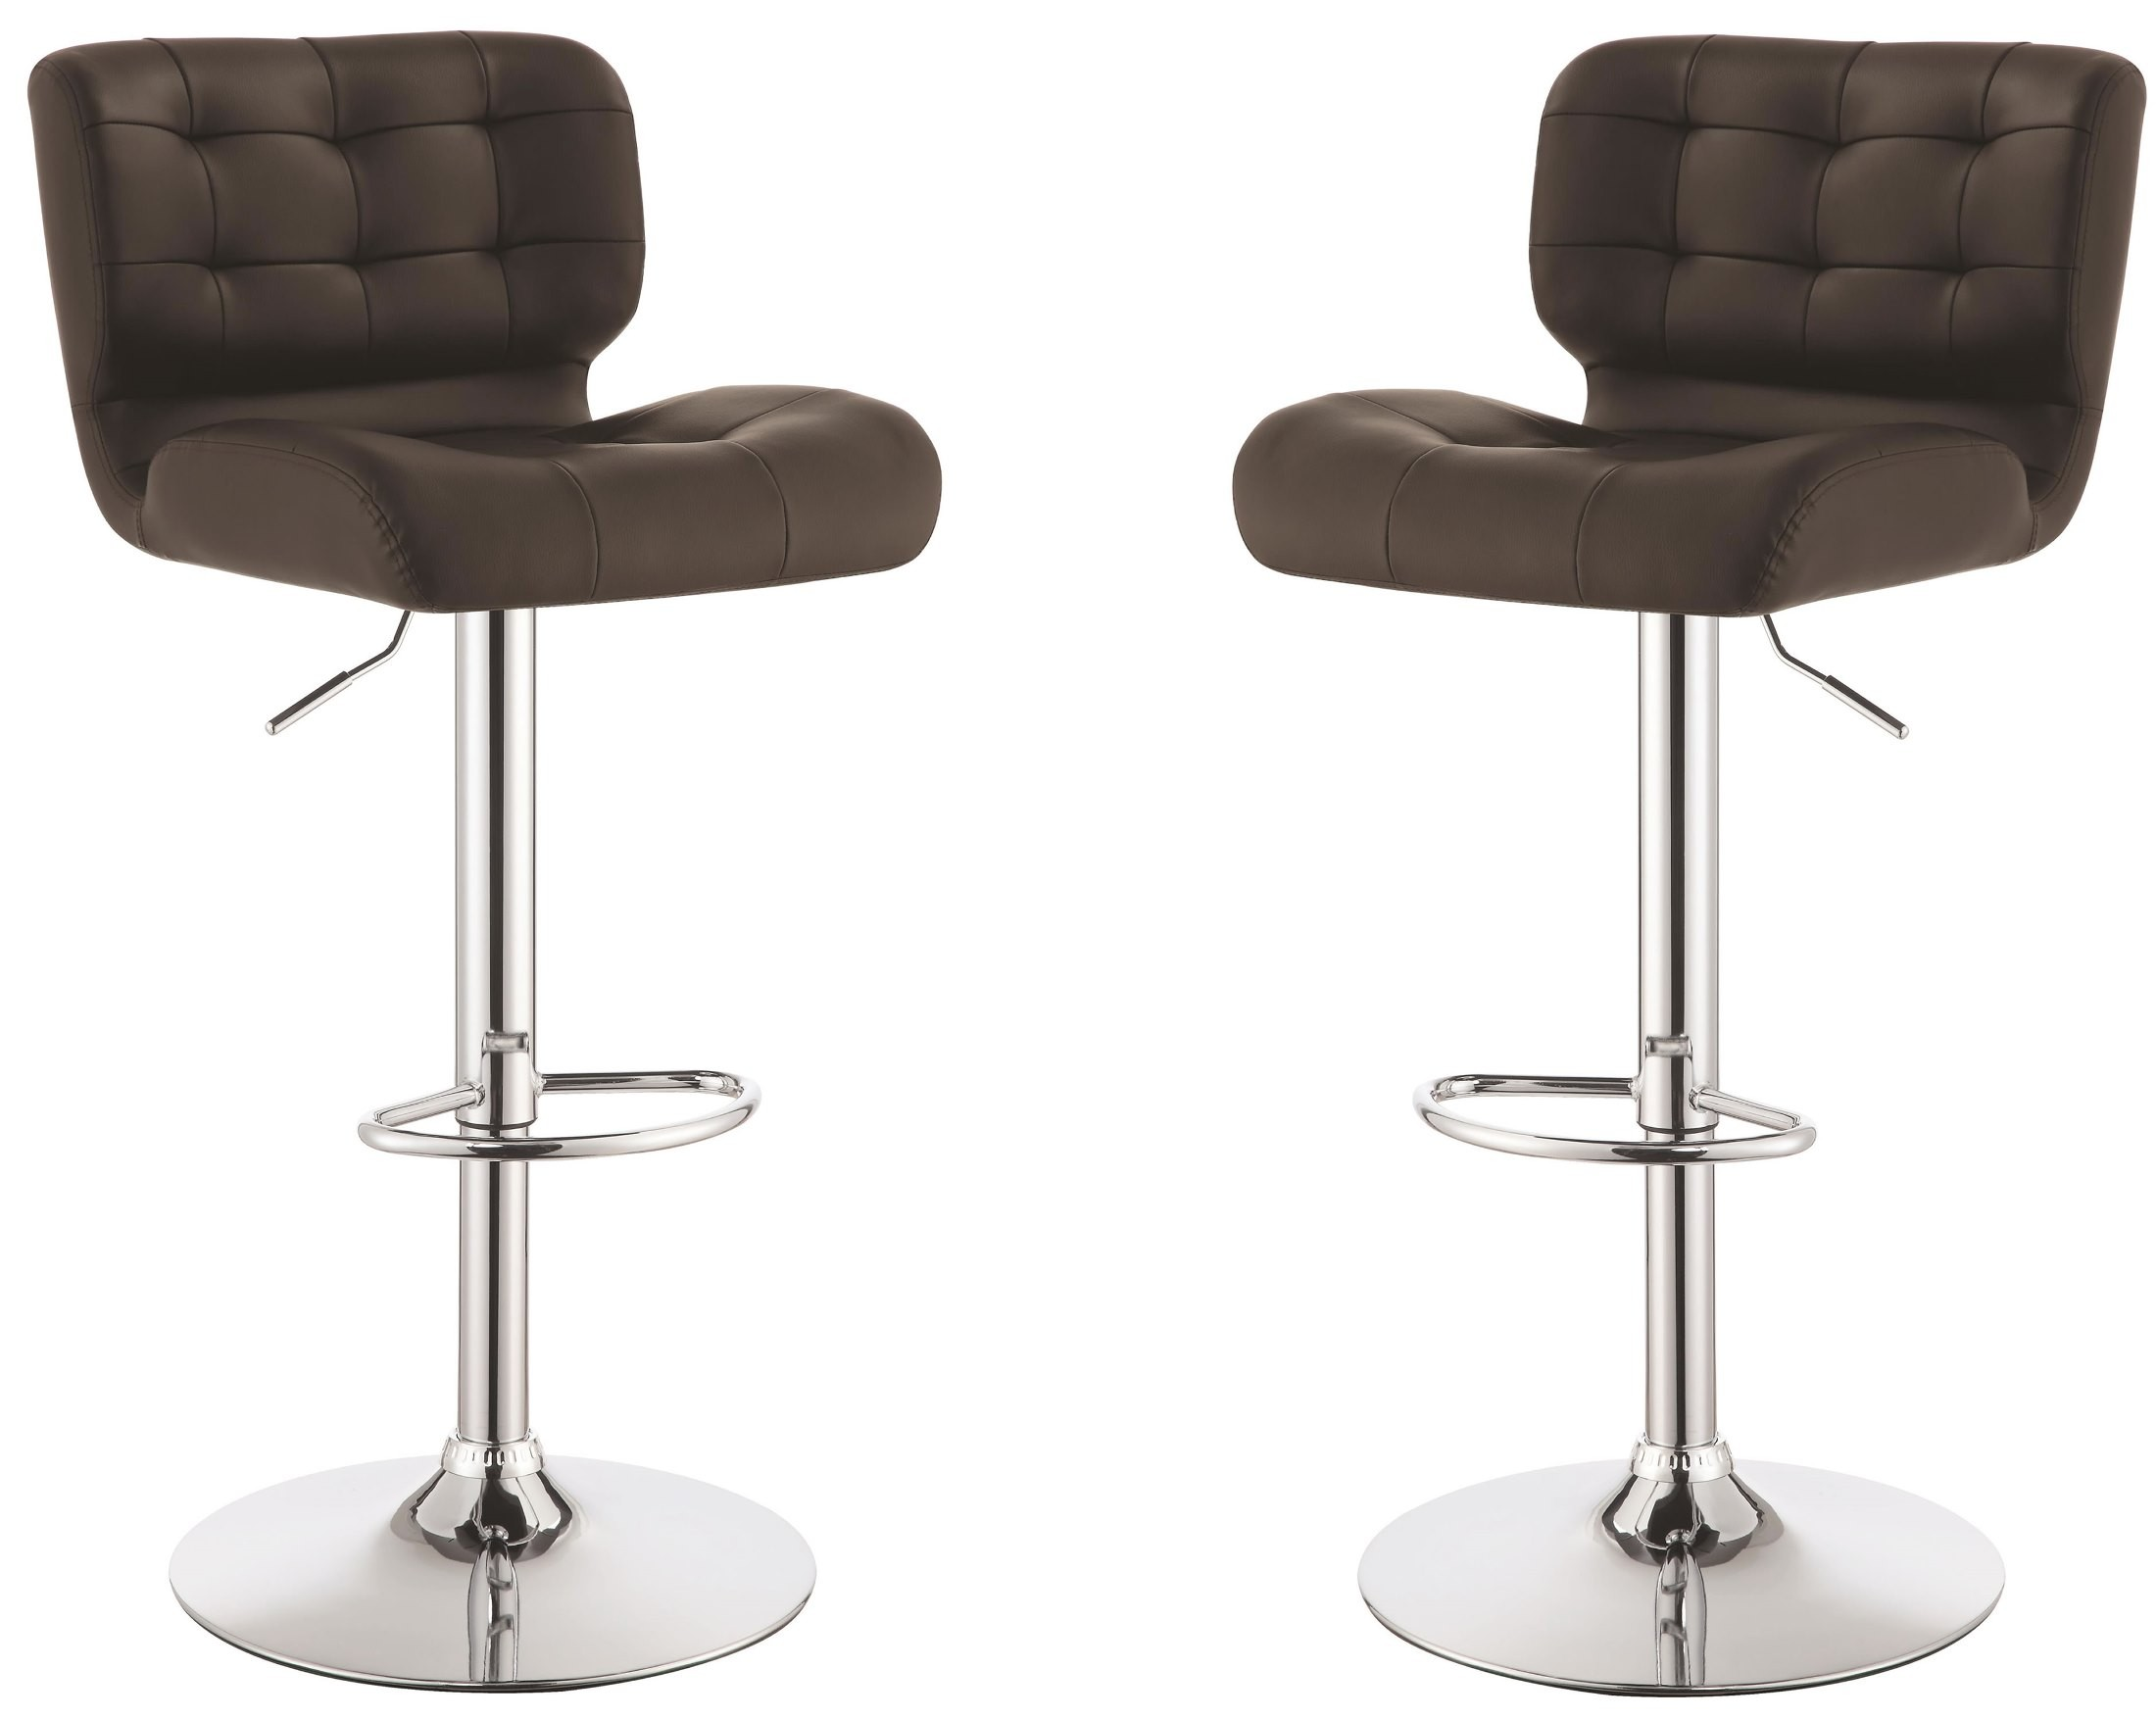 Brown Adjustable Bar Stool Brown Adjustable Bar Stool Set Of 2 From Coaster 100544